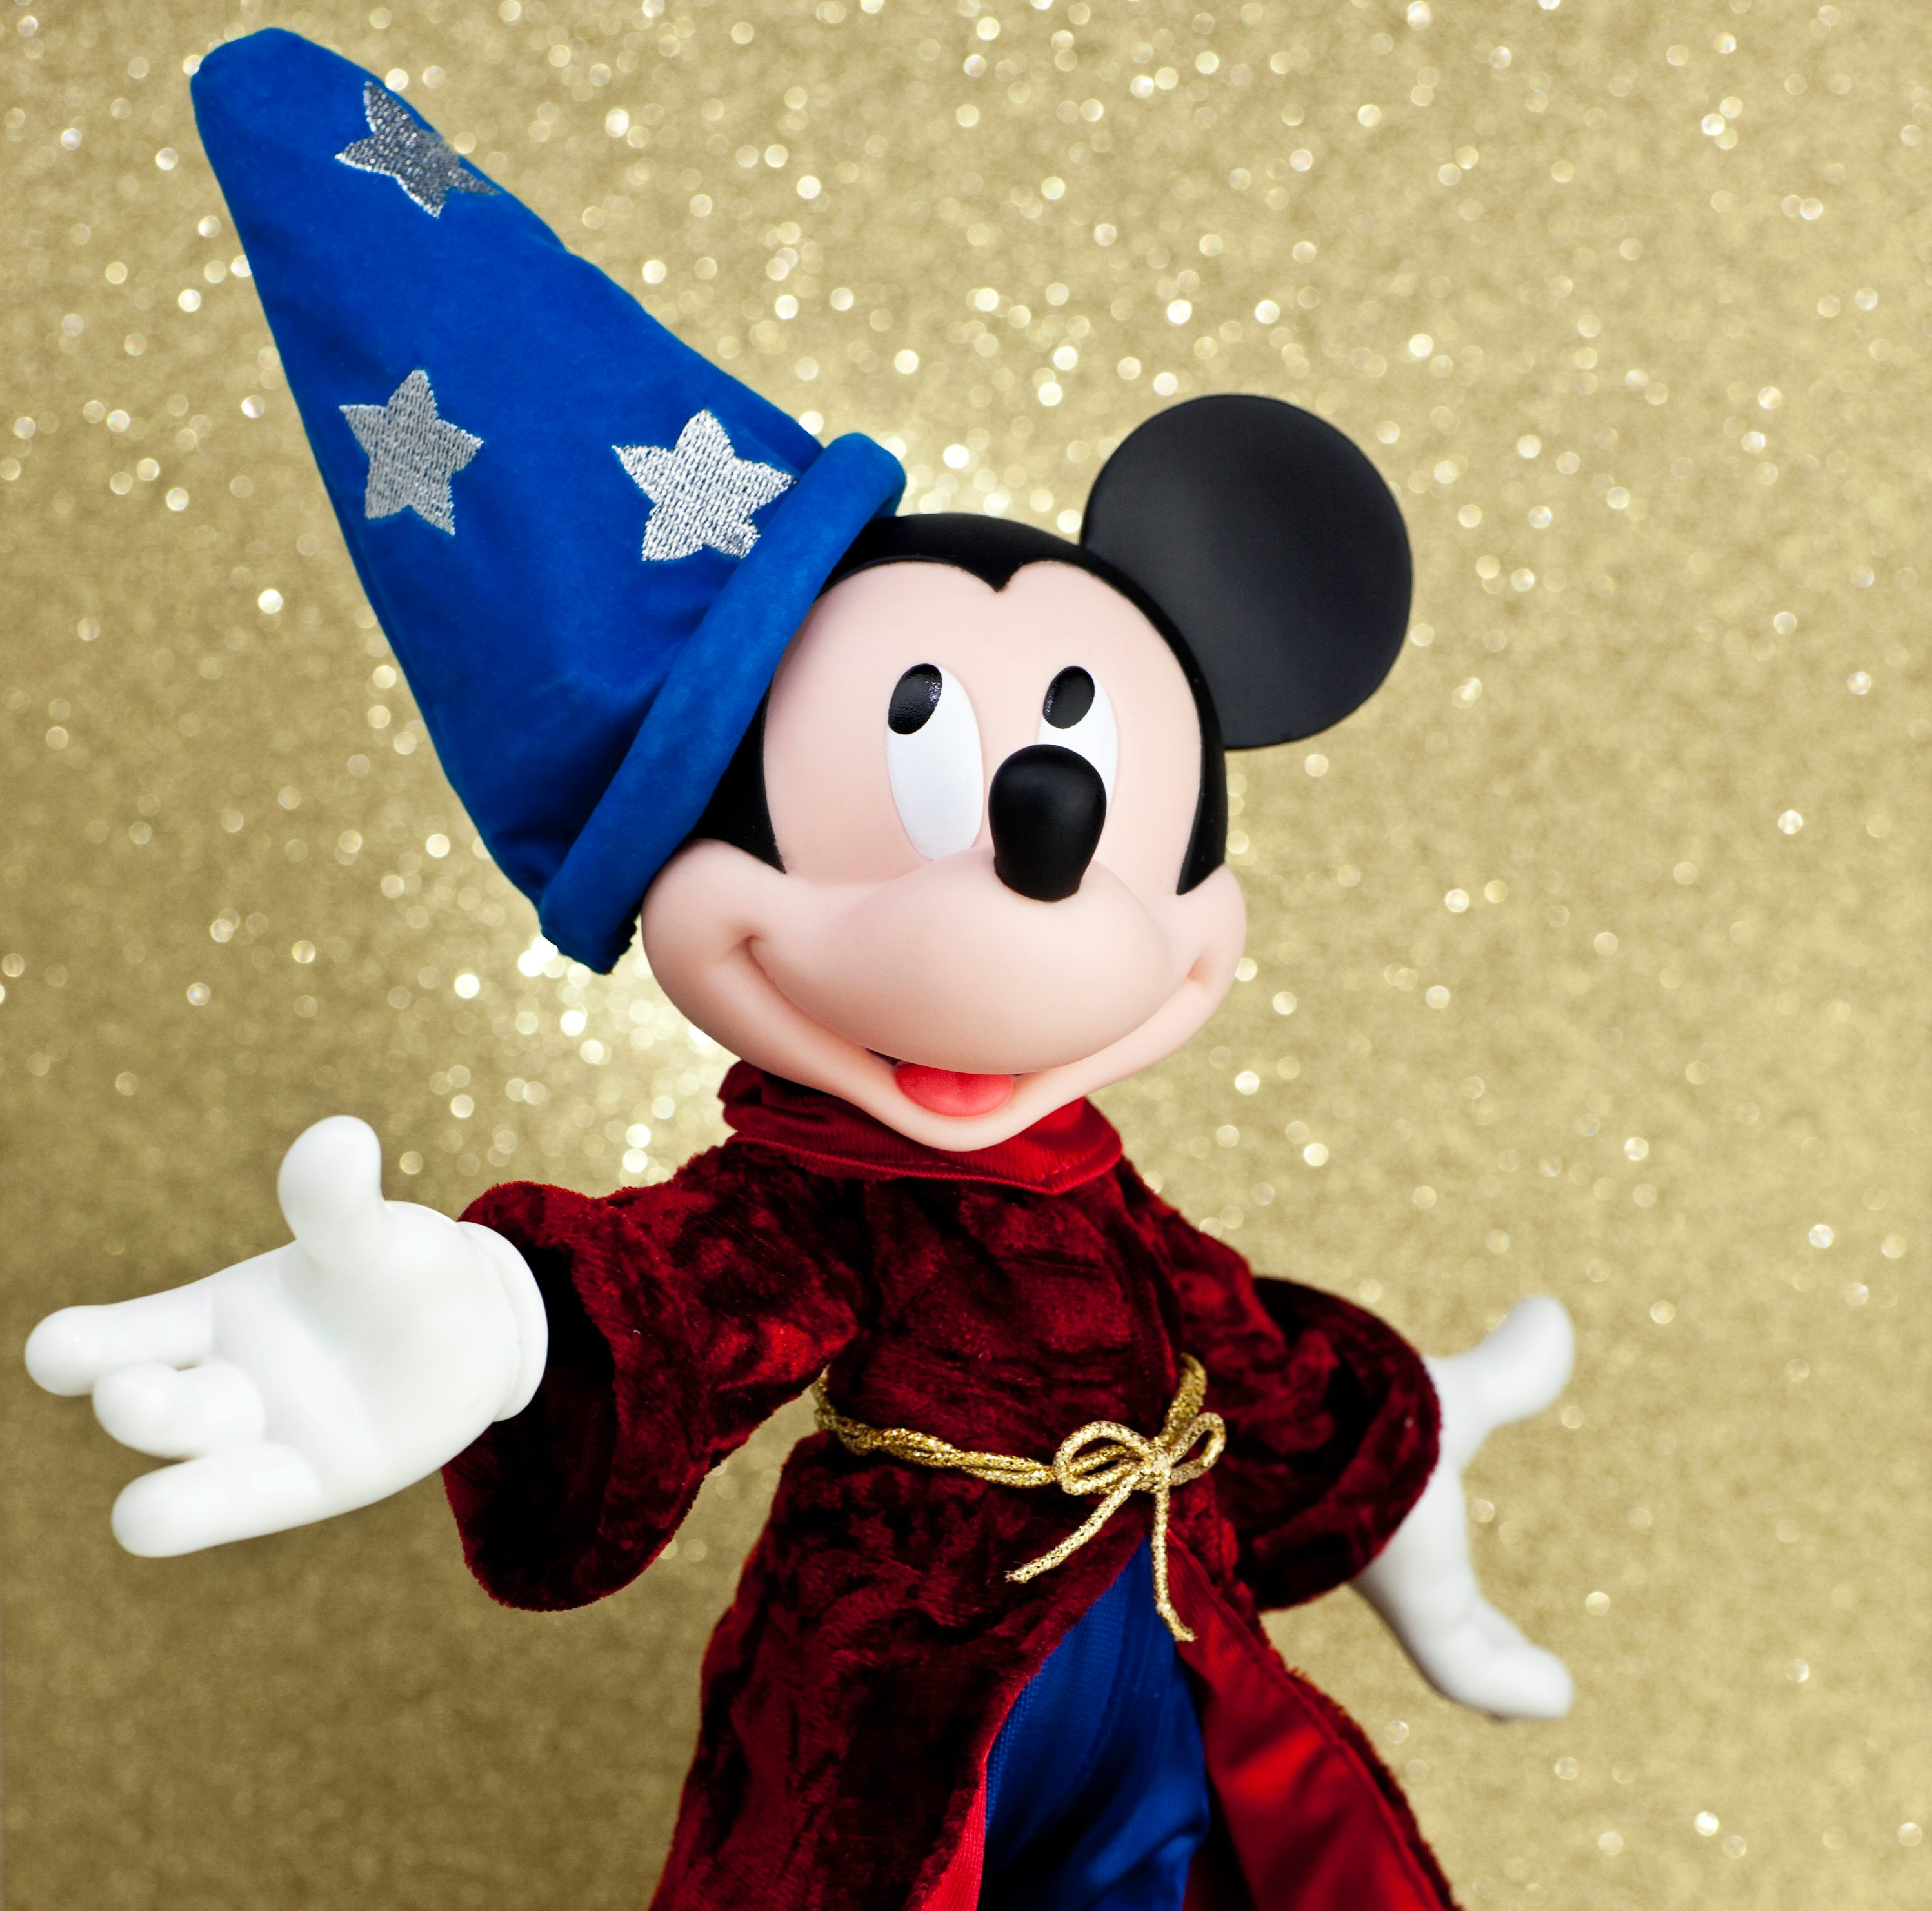 Mickey Mouse as the Sorcerer's Apprentice